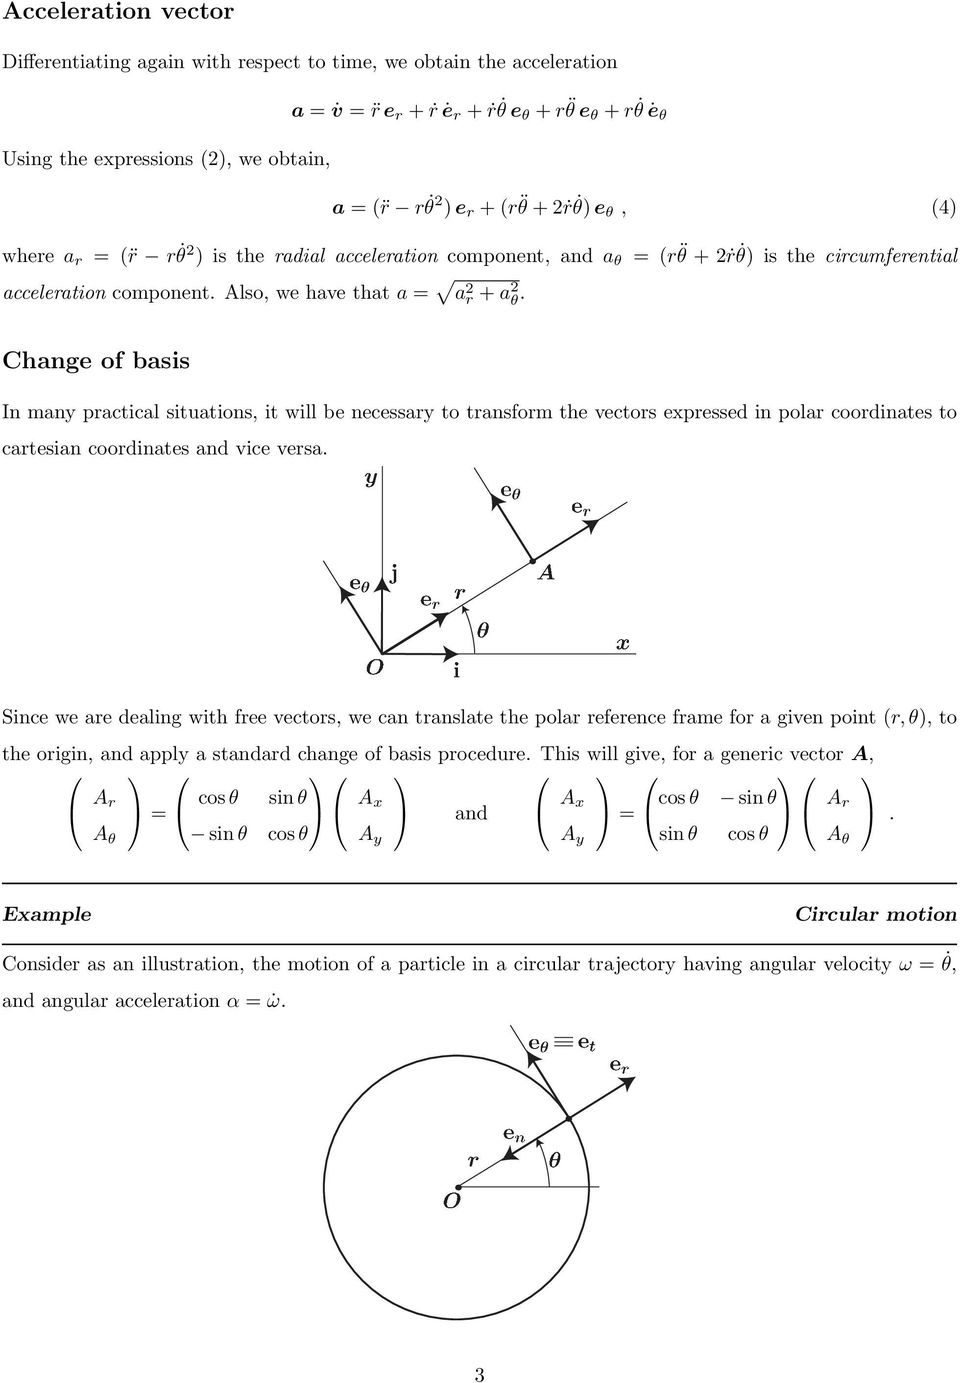 Change of basis In many practical situations, it will be necessary to transform the vectors expressed in polar coordinates to cartesian coordinates and vice versa.